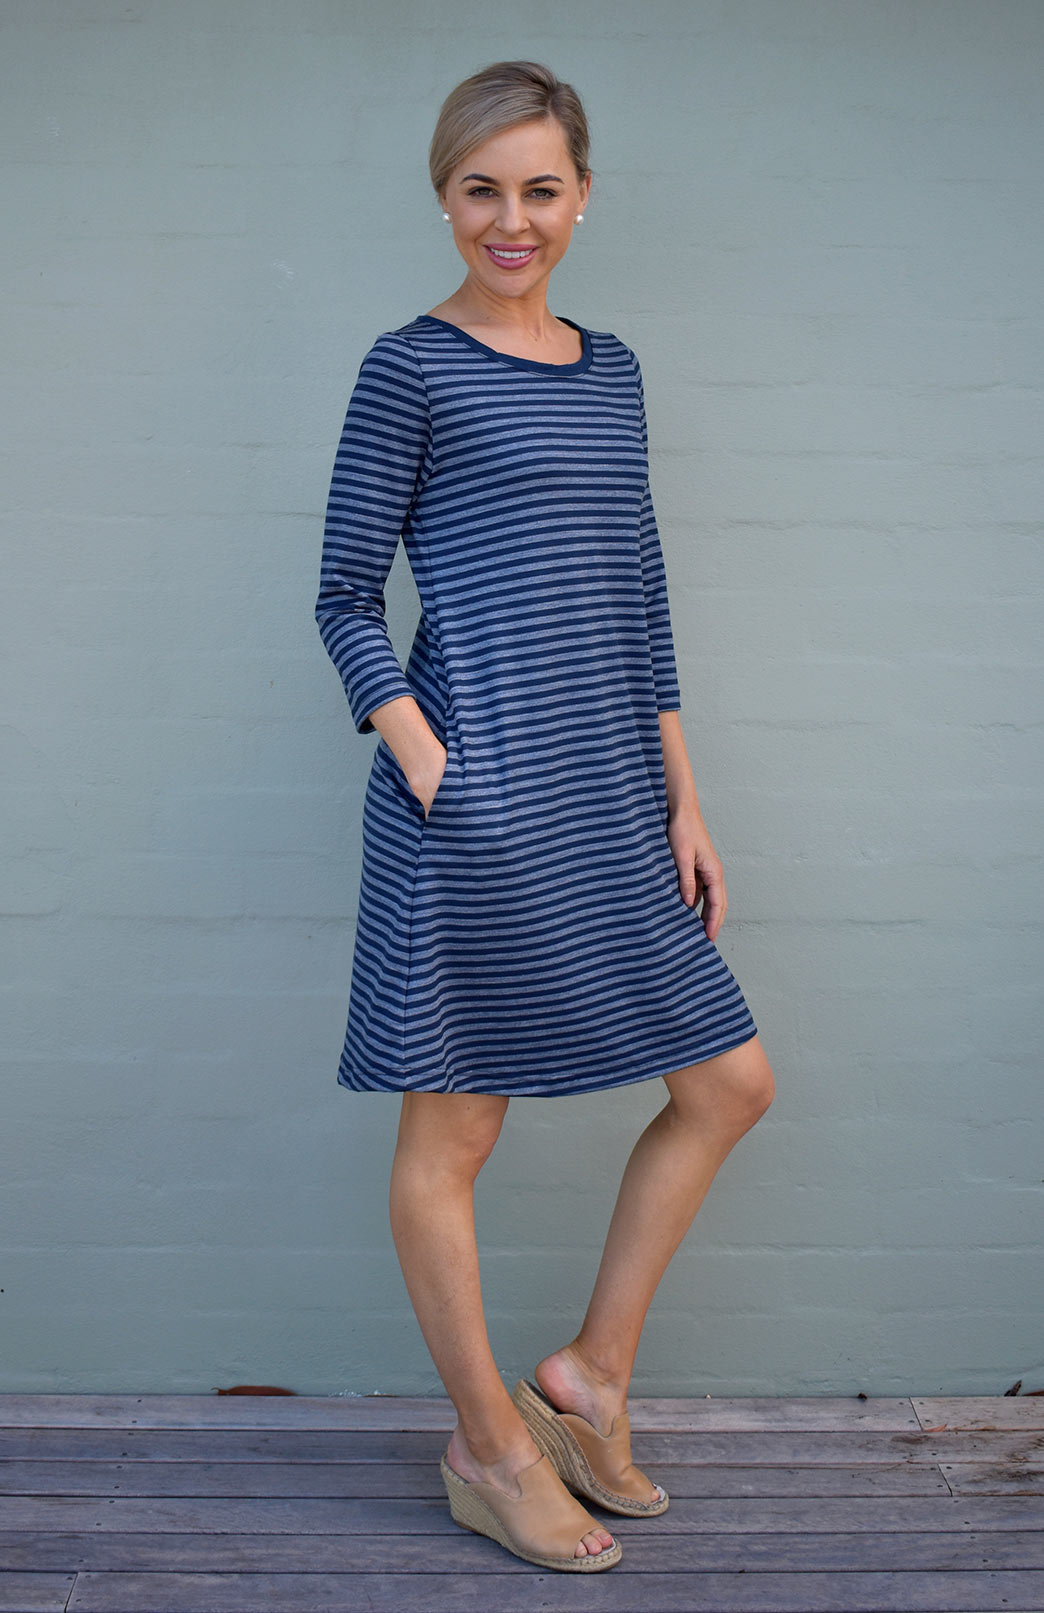 Ellie Dress - Women's Blue and Grey Striped A-Line Swing Dress with 3/4 sleeves and Side Pockets - Smitten Merino Tasmania Australia